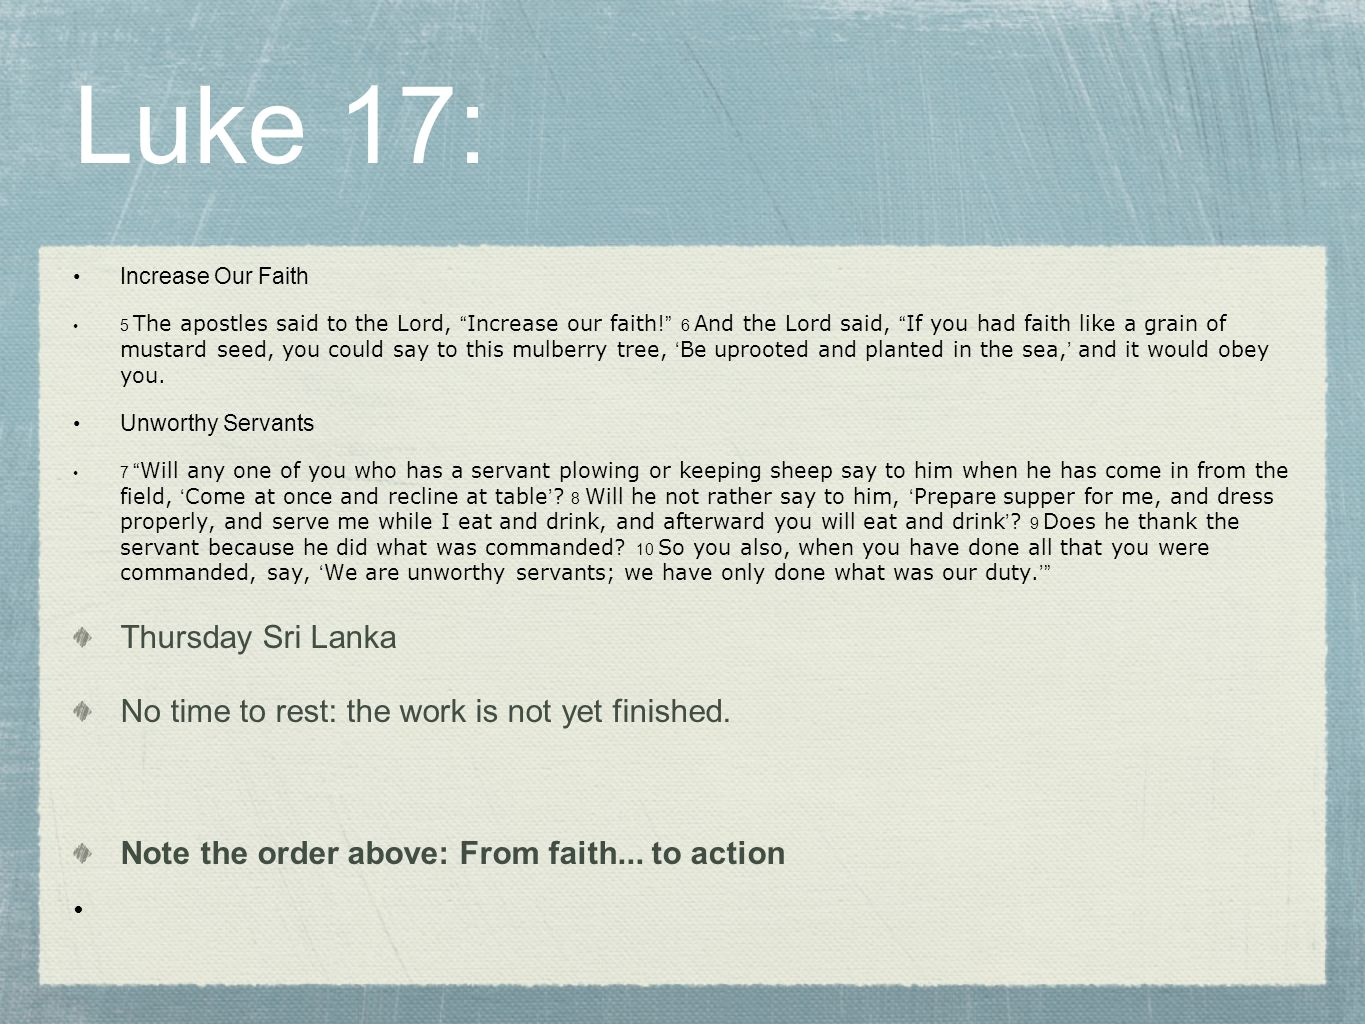 Luke 17: Thursday Sri Lanka